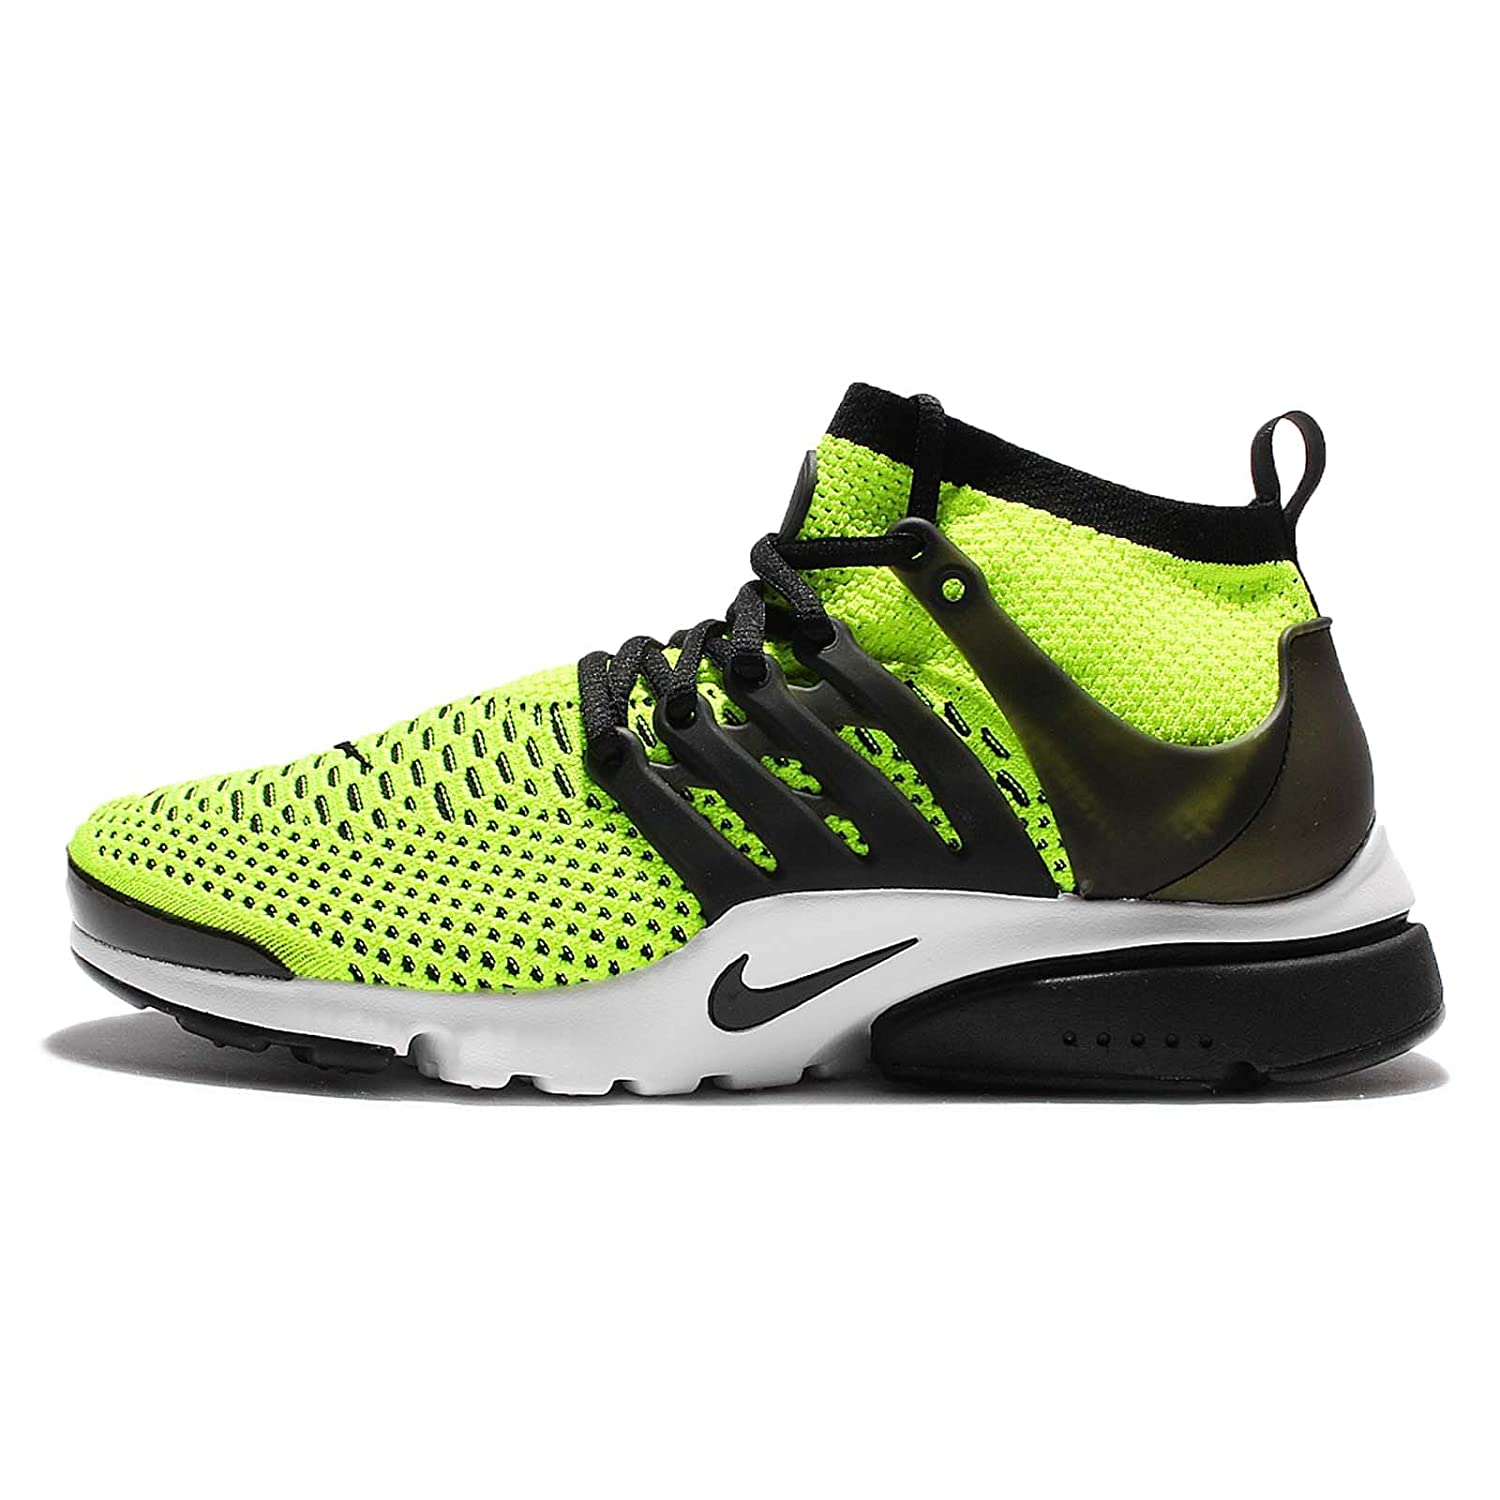 best service 32680 ef93f Amazon.com  Nike Air Presto Ultra Flyknit 835570-701 Volt White Black Men s  Running Shoes (Size 8)  Sports   Outdoors